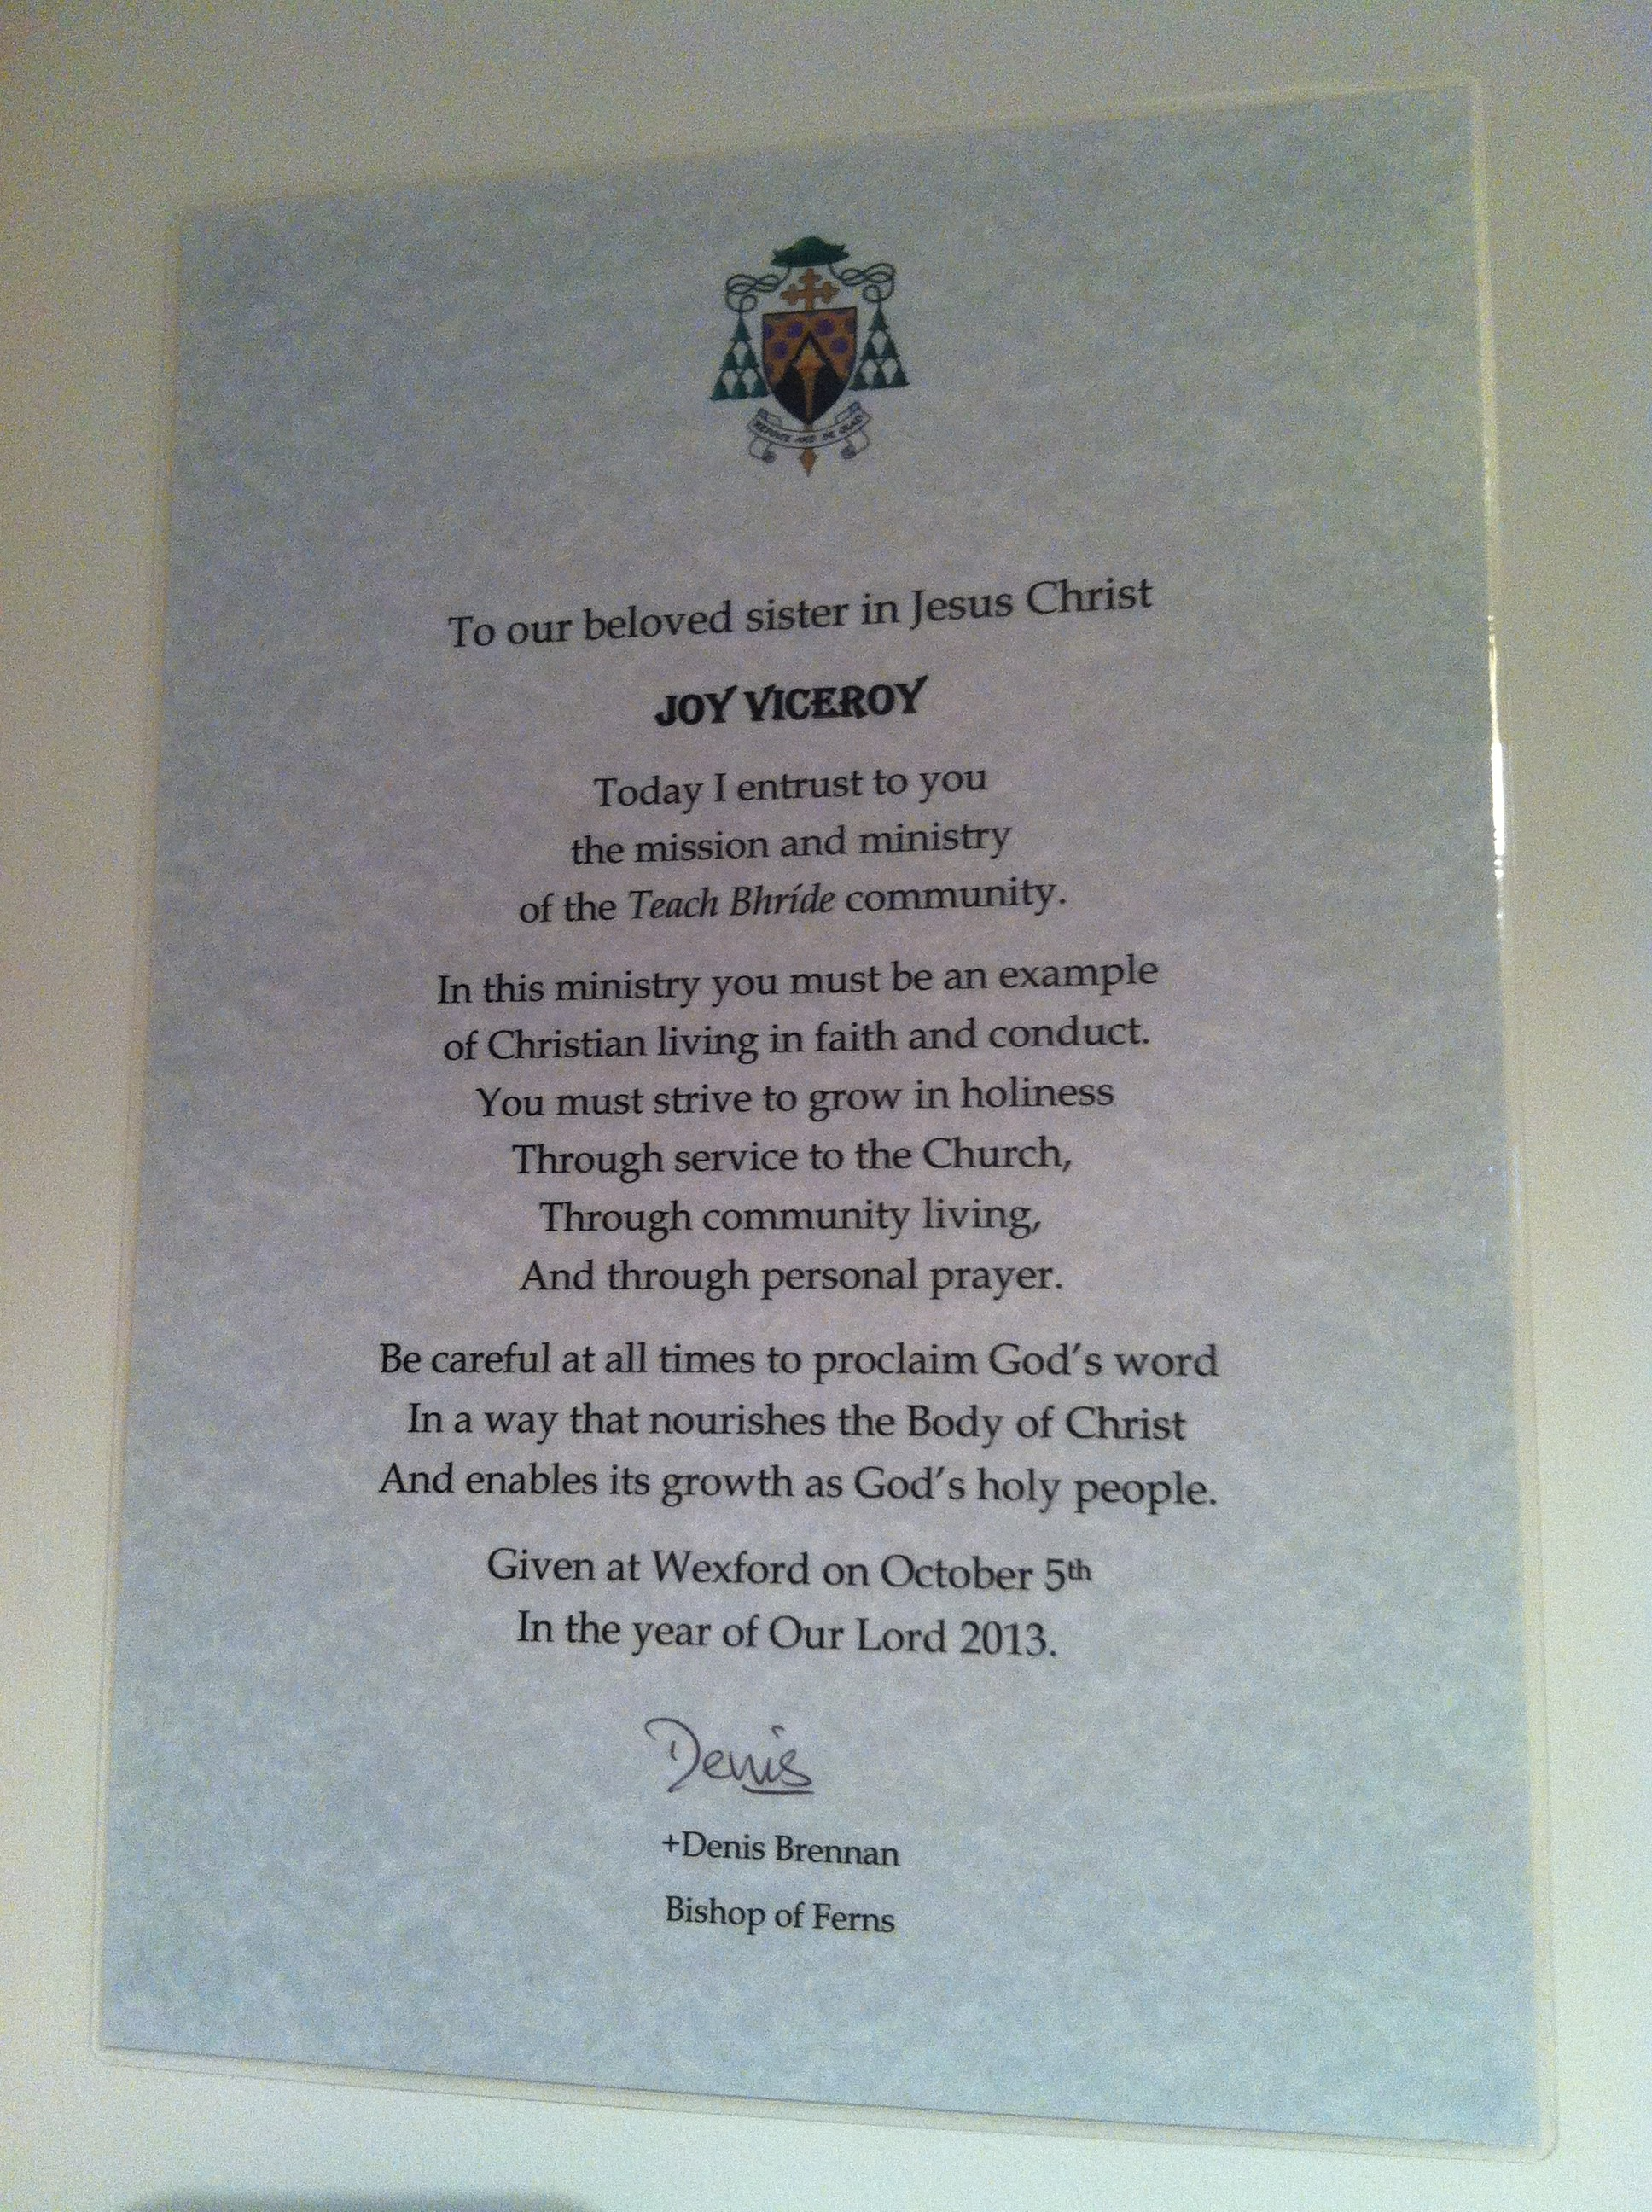 The certificate we all received from Bishop Denis for our commissioning ceremony.  What a huge responsibility we have all been granted!